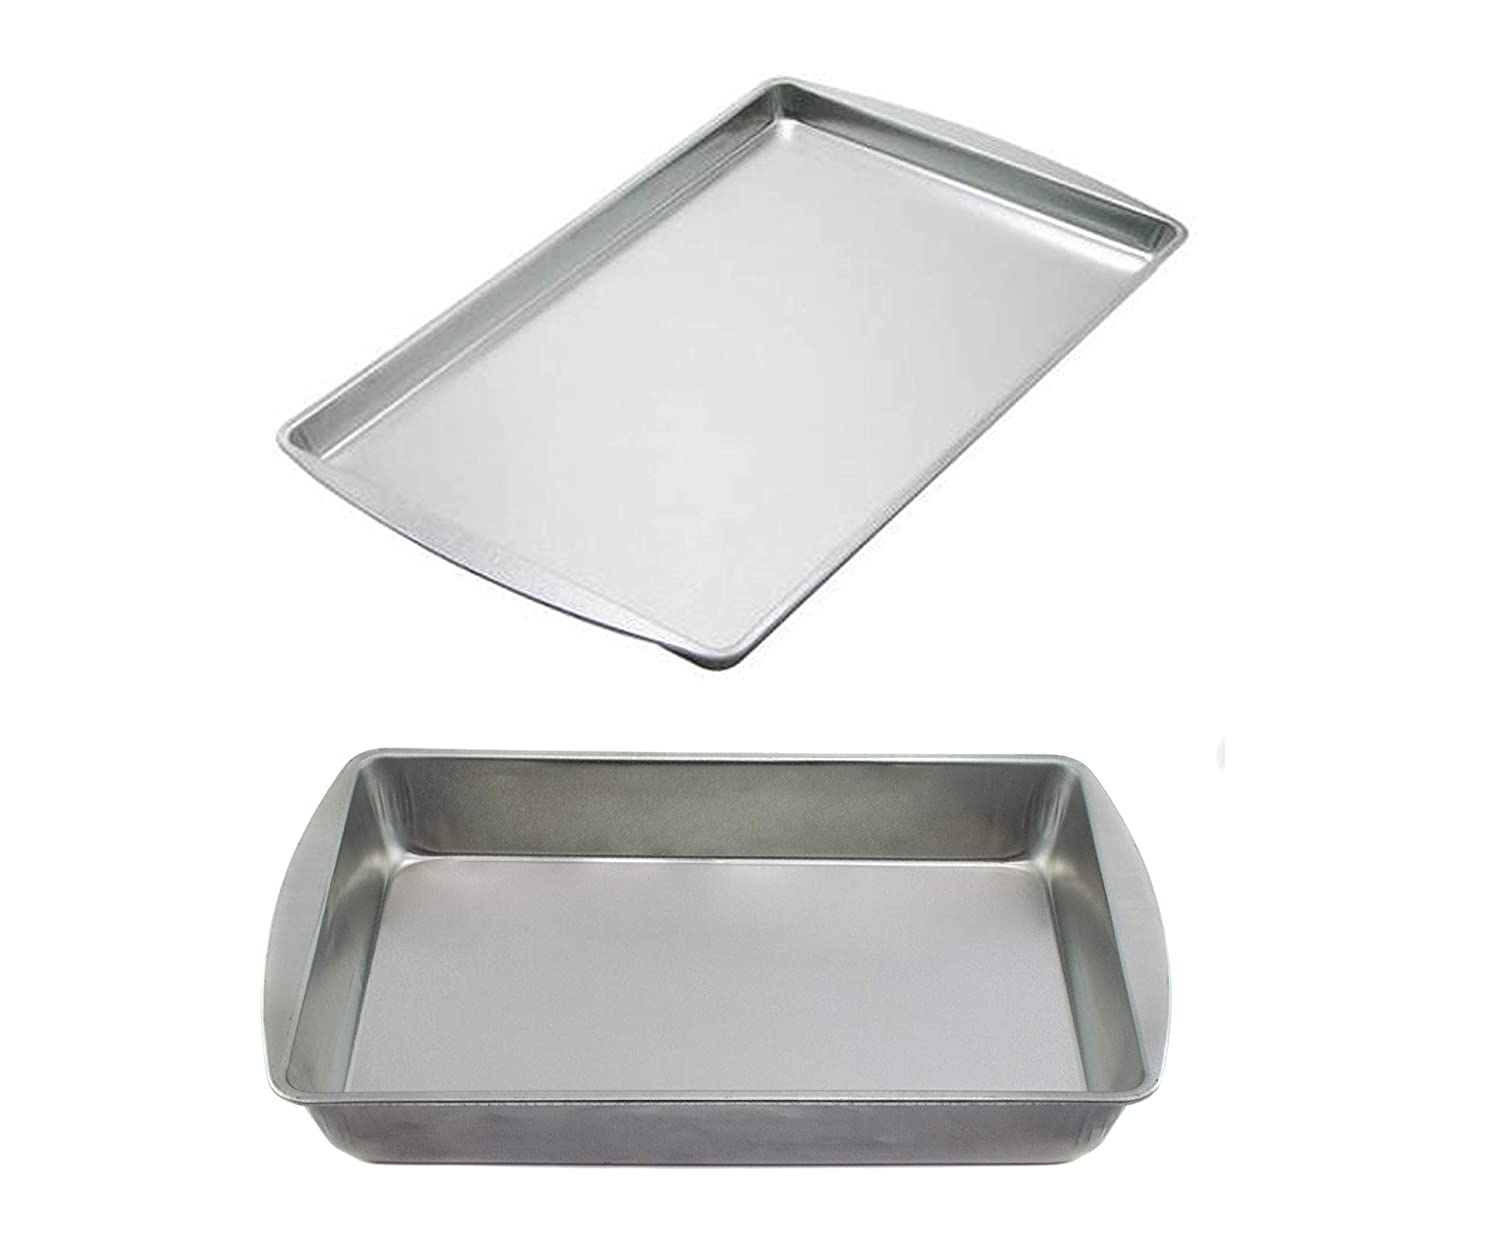 Mainstays Covered Cake and Utility Pan bundle with Mainstays Small Non-Stick Cookie PanMainstays Covered Cake and Utility Pan bundle with Mainstays Small Non-Stick Cookie Pan